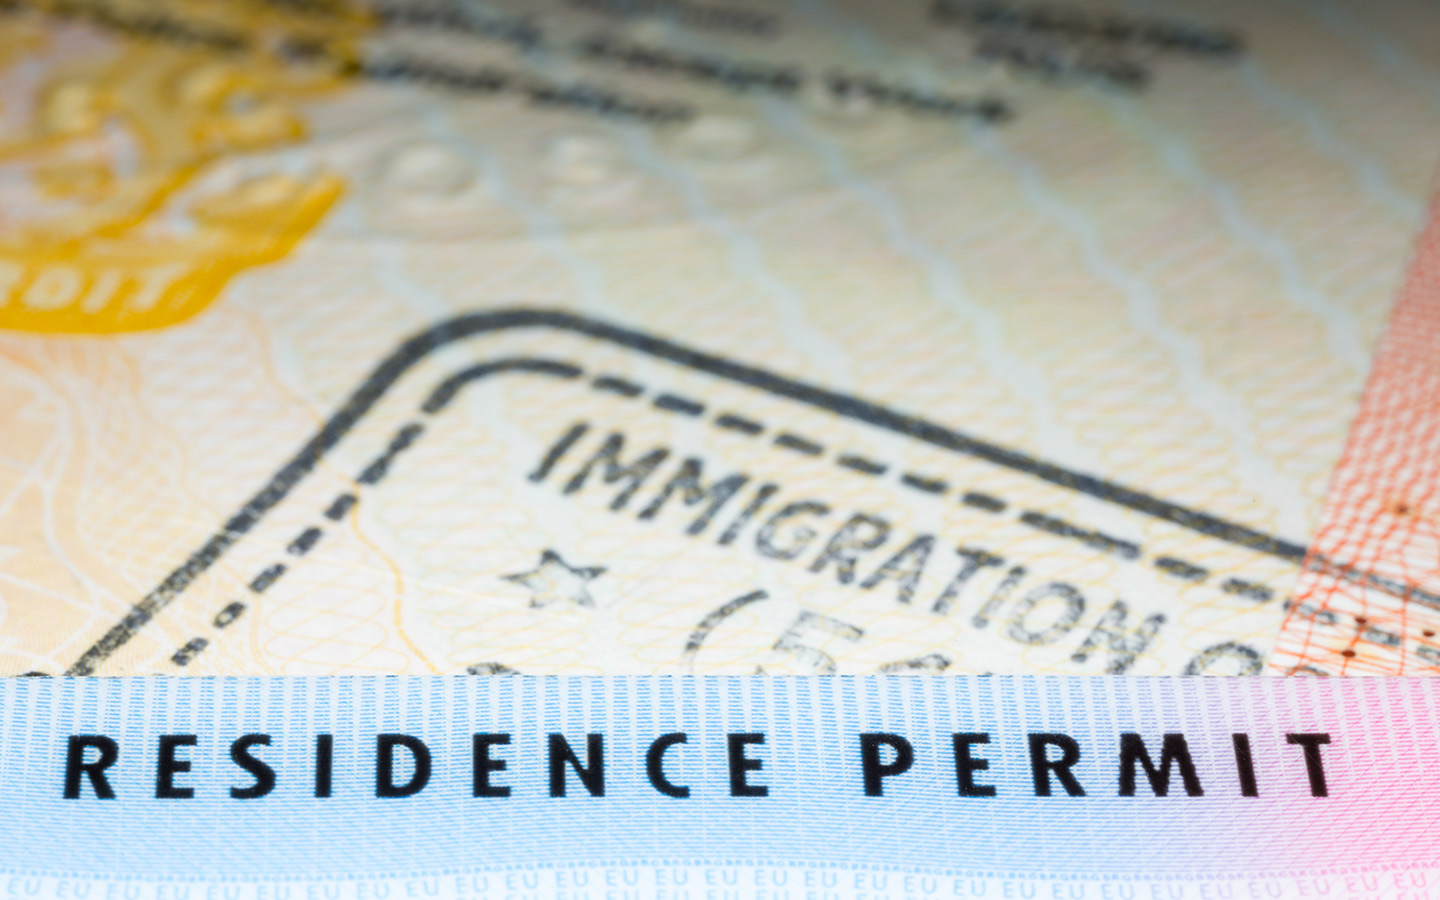 View of immigration stamp and residence permit on passport